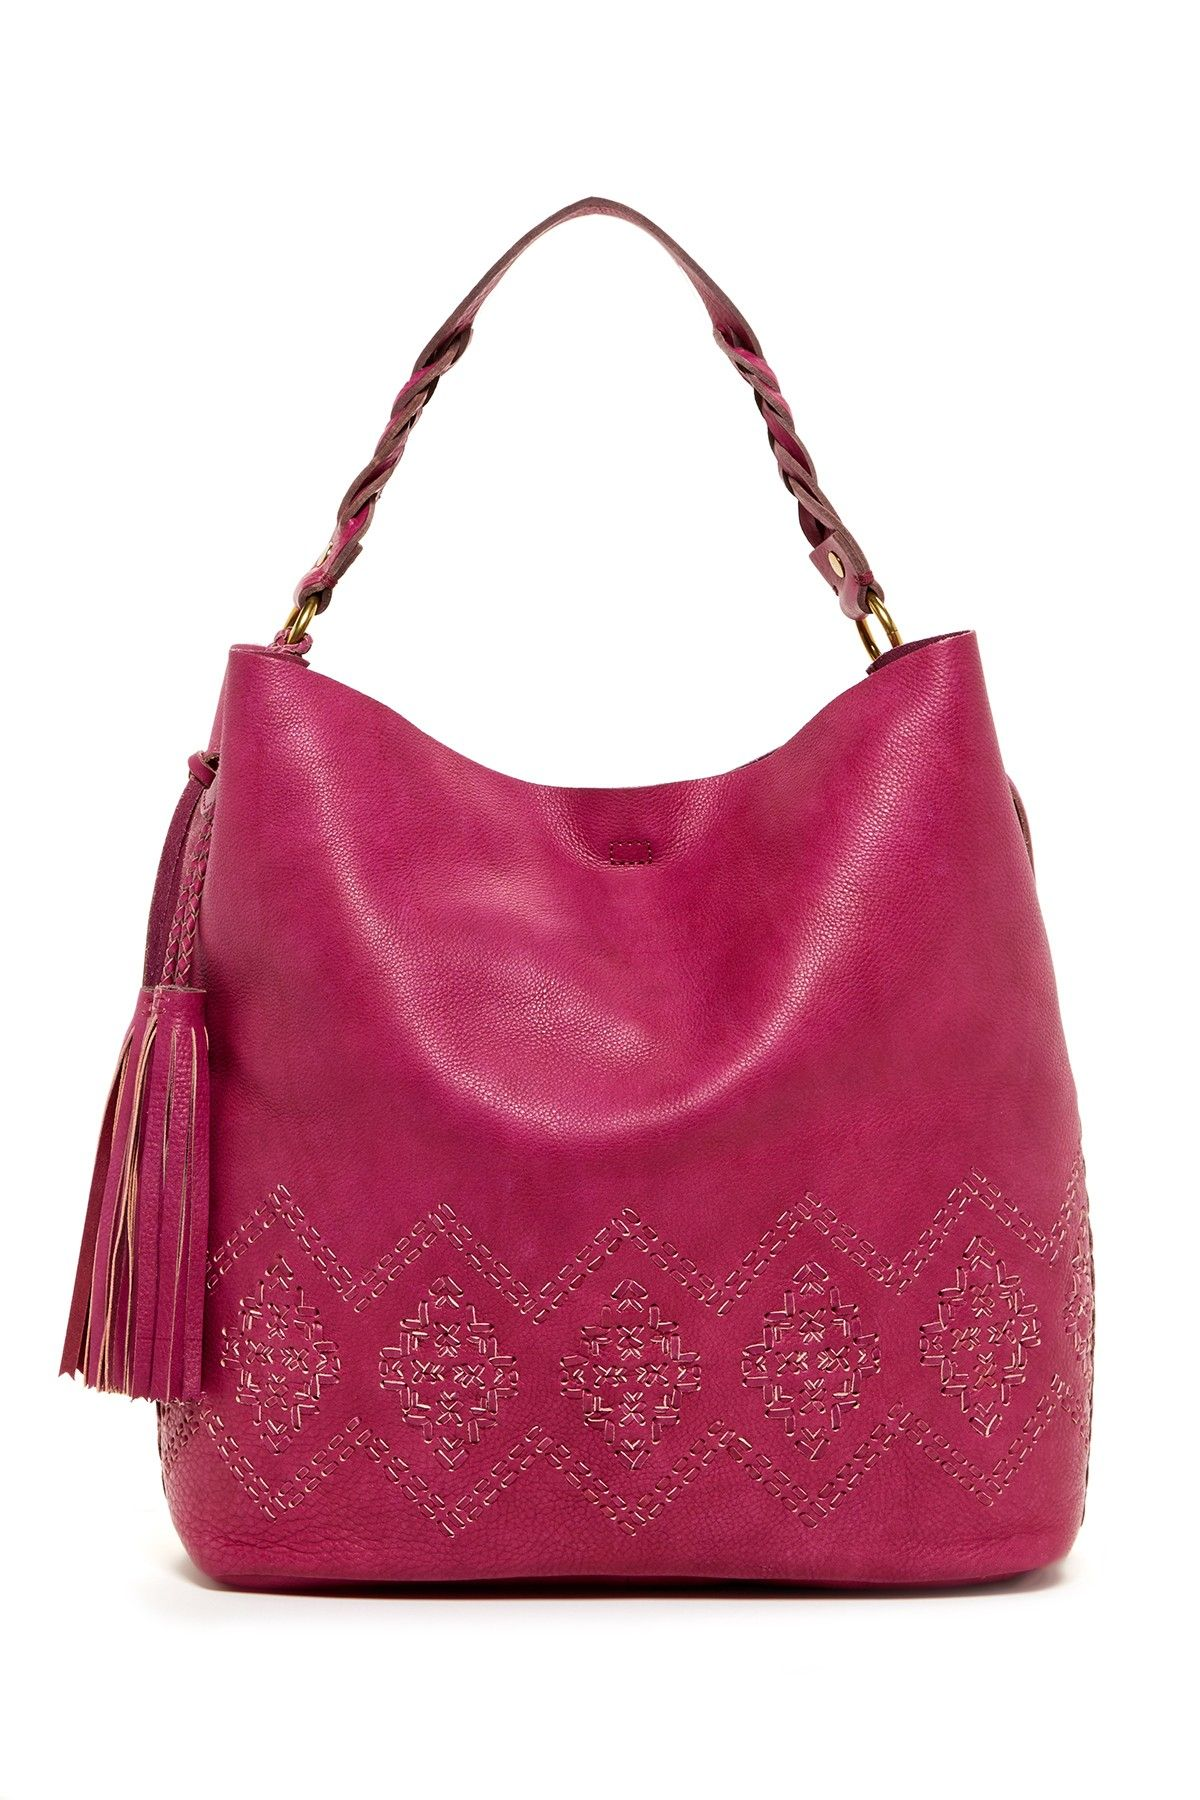 Isabella Fiore Mary Hobo Nordstrom Rack The Color